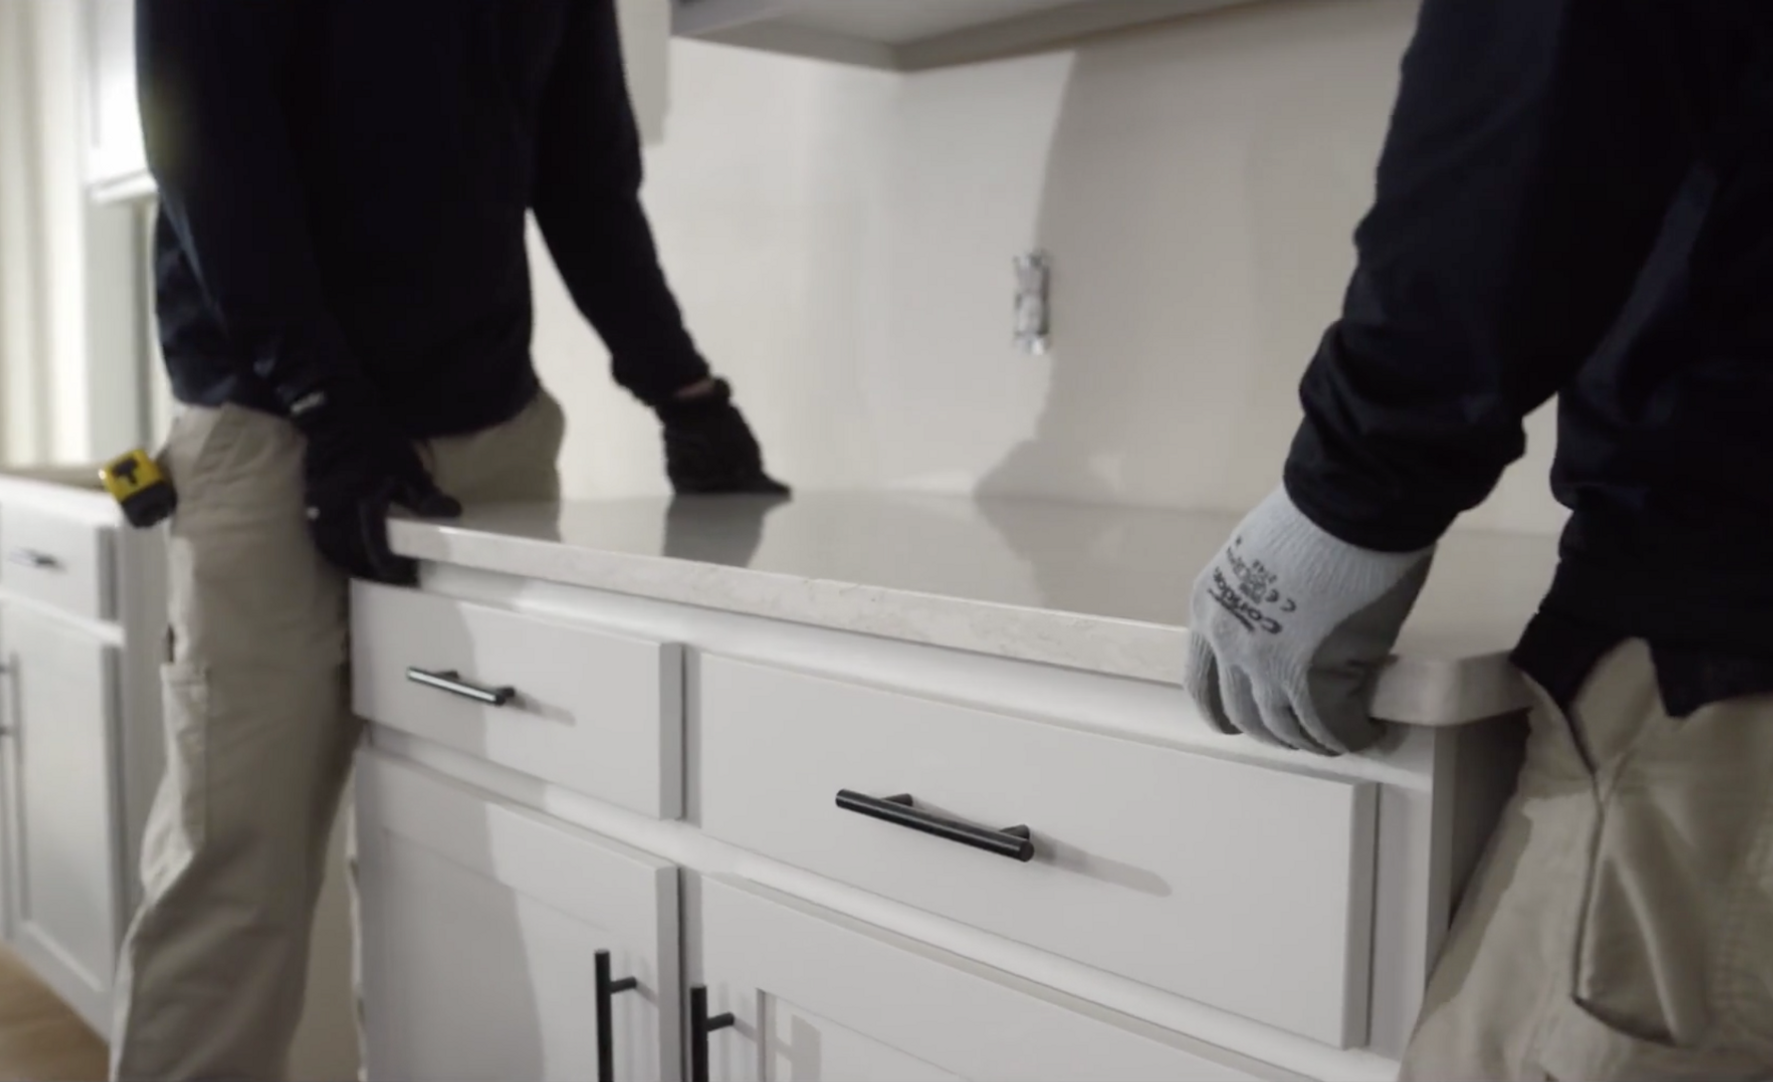 Two installers place a Cambria countertop onto a white cabinet for install.